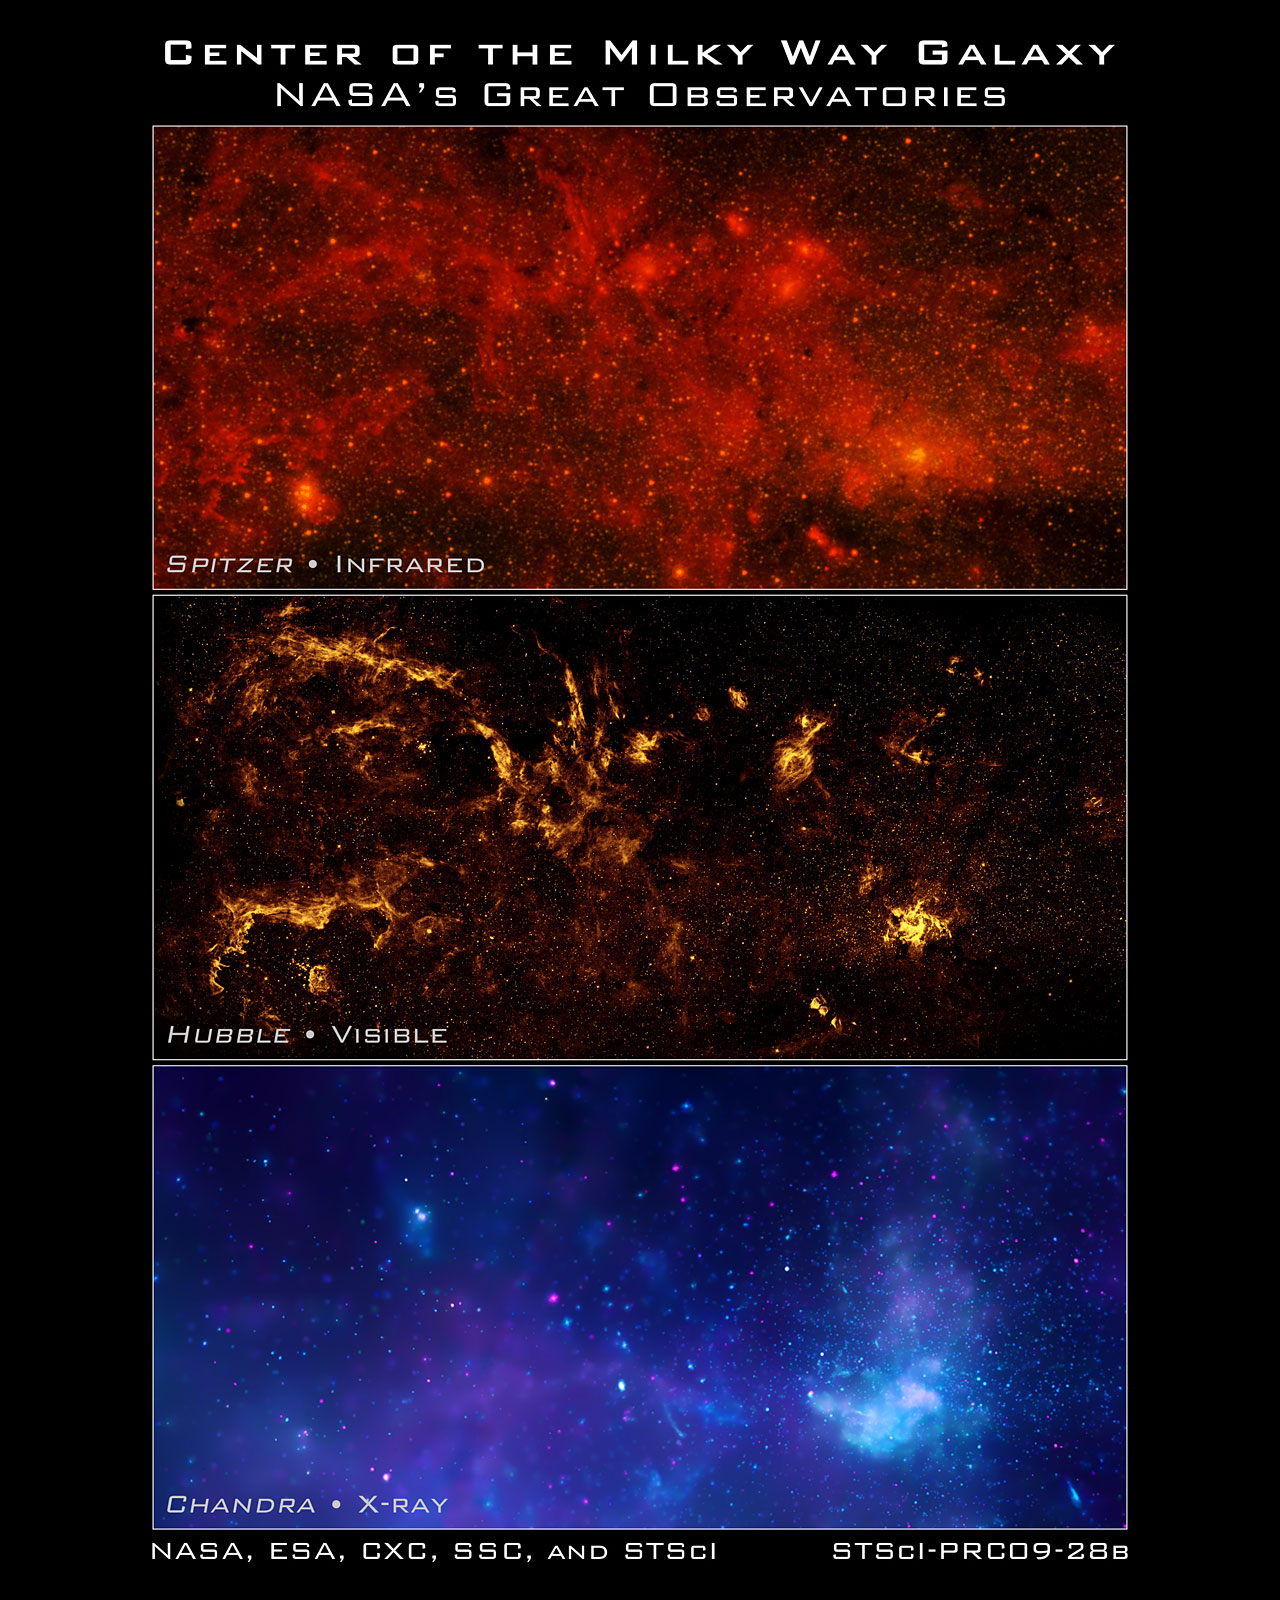 Hubble and other Great Observatories present unique views of the centre of the Milky Way